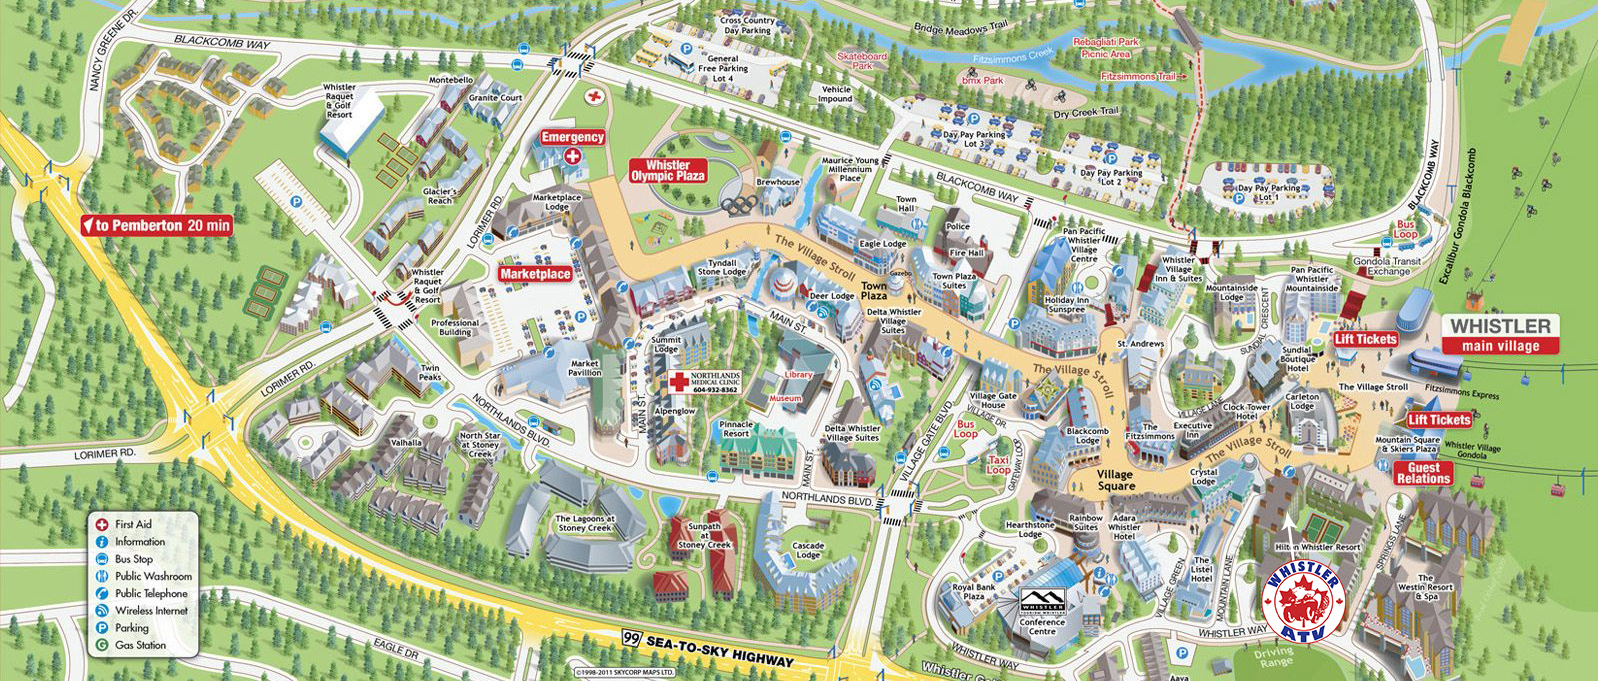 whistler-village-map2